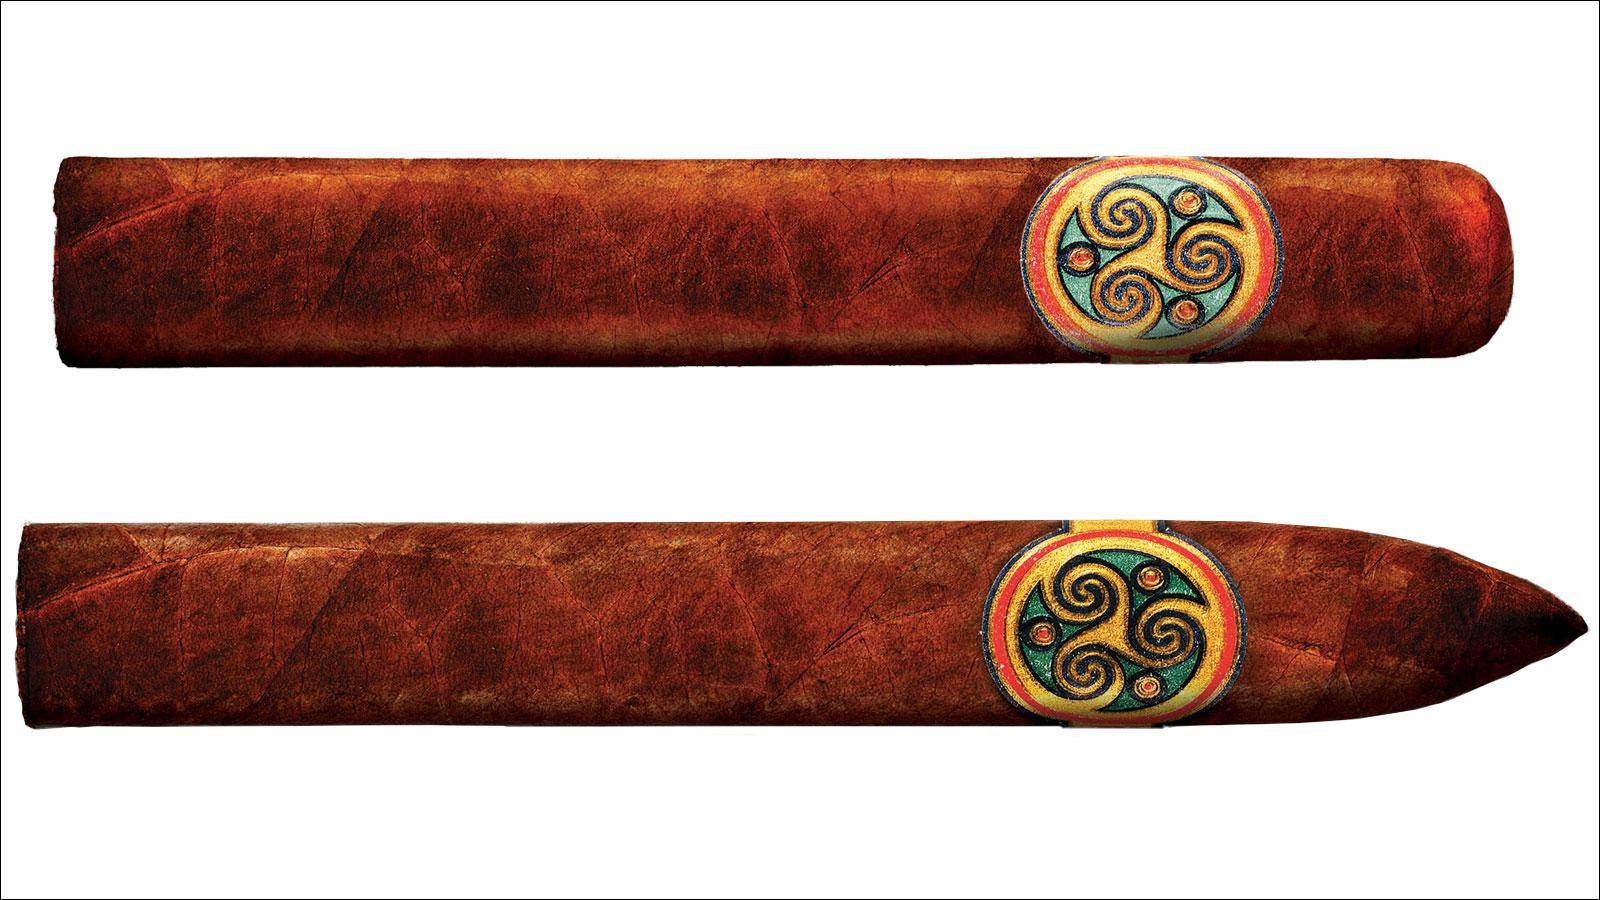 Bombay Tobak Launching Gaaja Maduro, Extends Gaaja Line